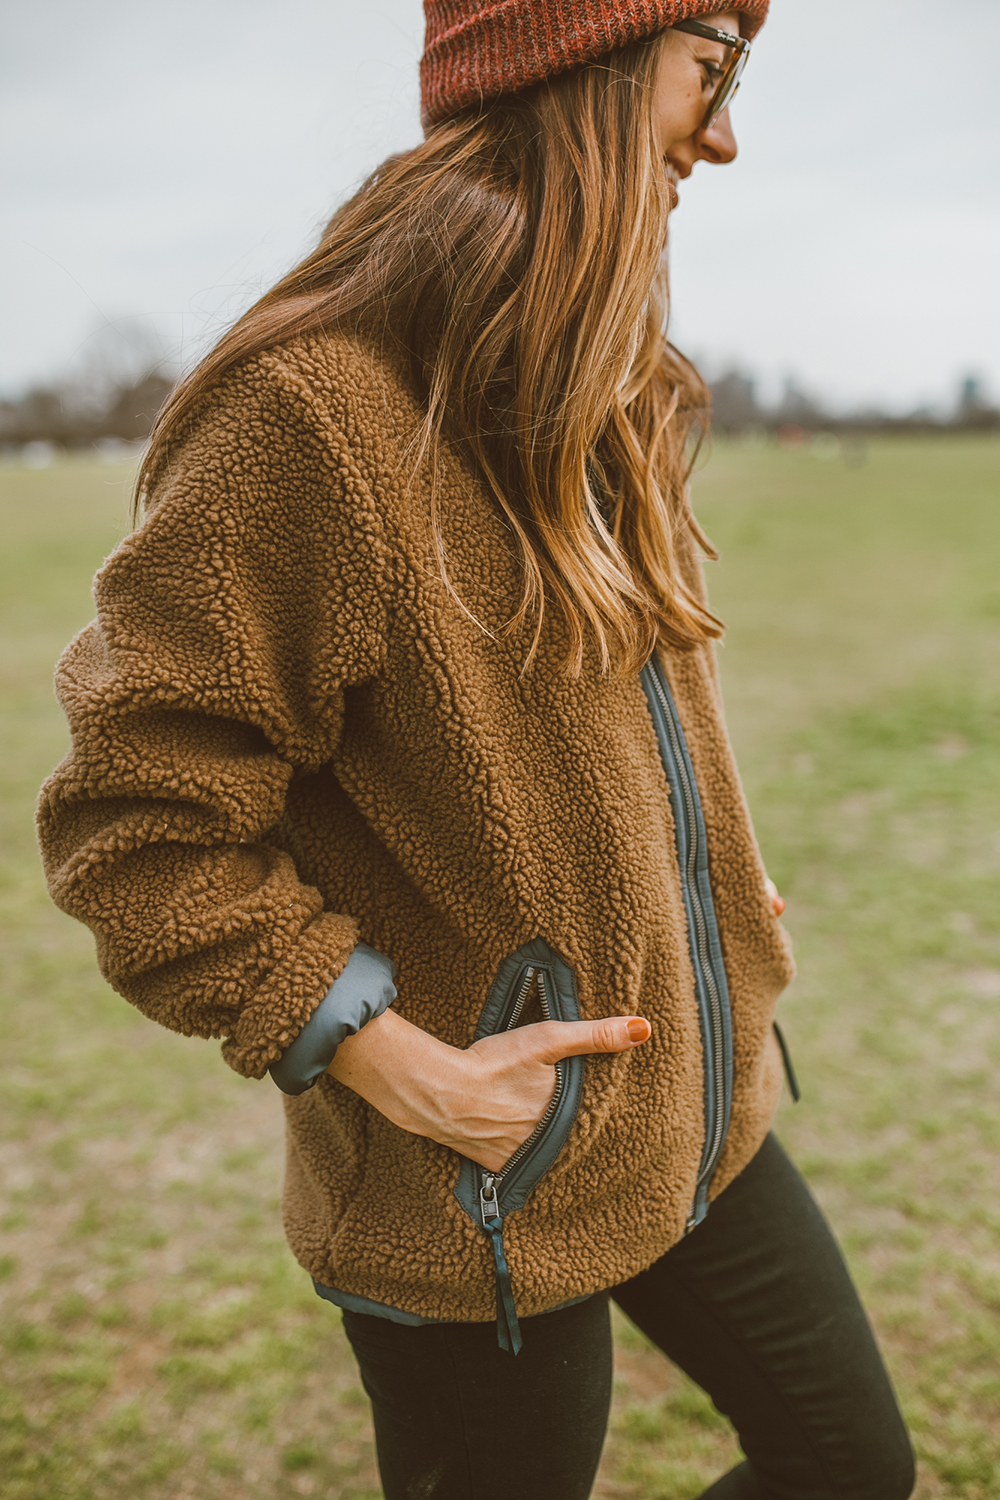 livvyland-blog-olivia-watson-austin-texas-lifestyle-fashion-blogger-zilker-park-vans-ultrarange-rapidweld-sneakers-patagonia-divided-sky-jacket-4